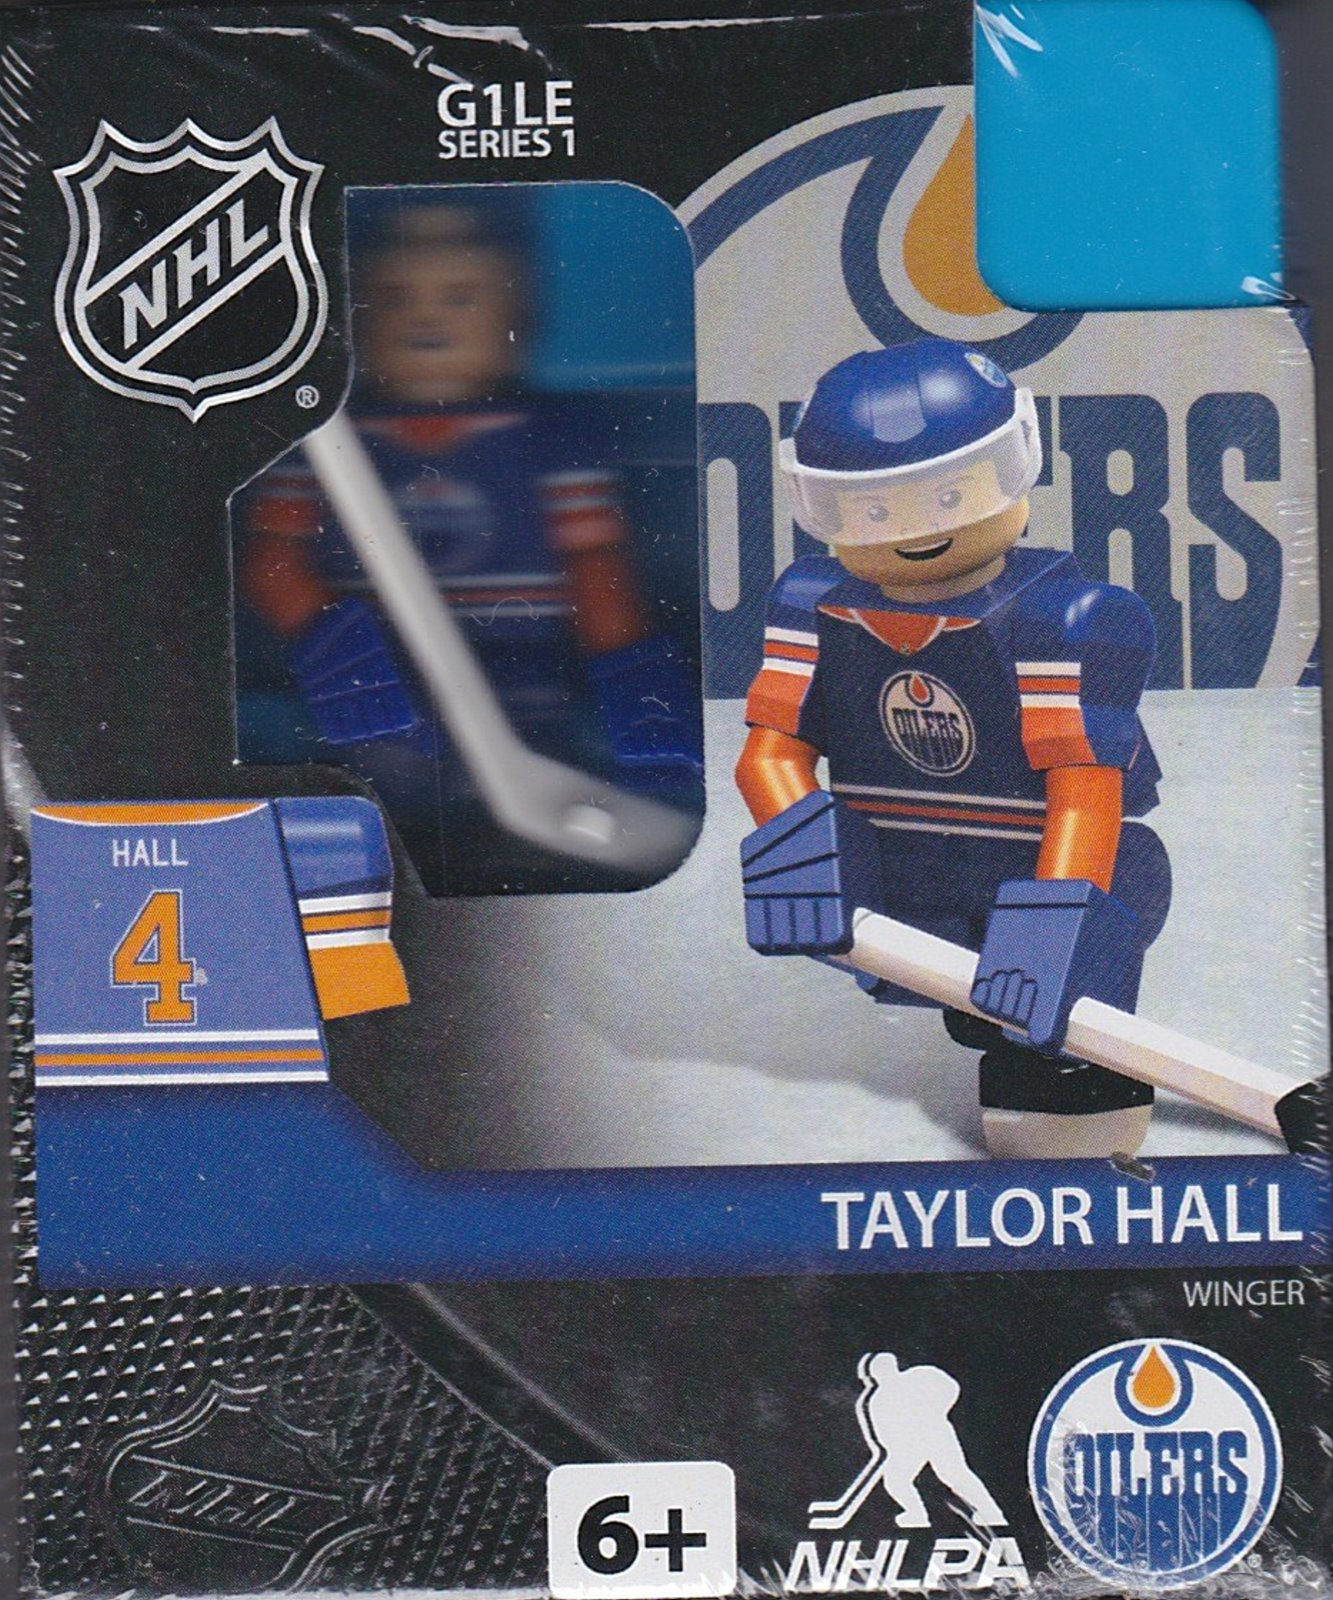 Taylor Hall Edmonton Oilers NHL OYO Hockey G1LE Series 1